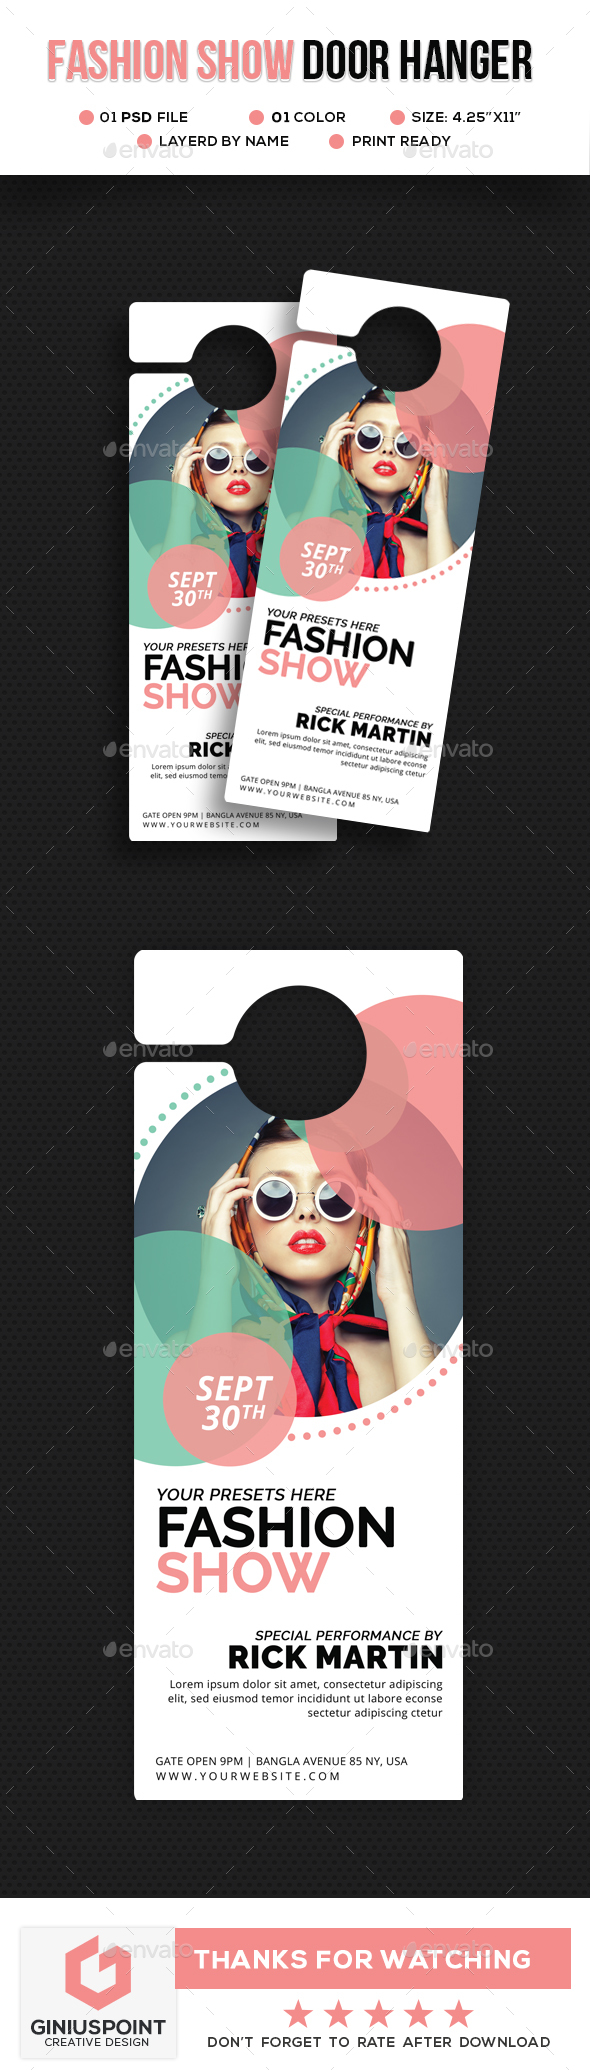 GraphicRiver Fashion Door Hanger 20687203